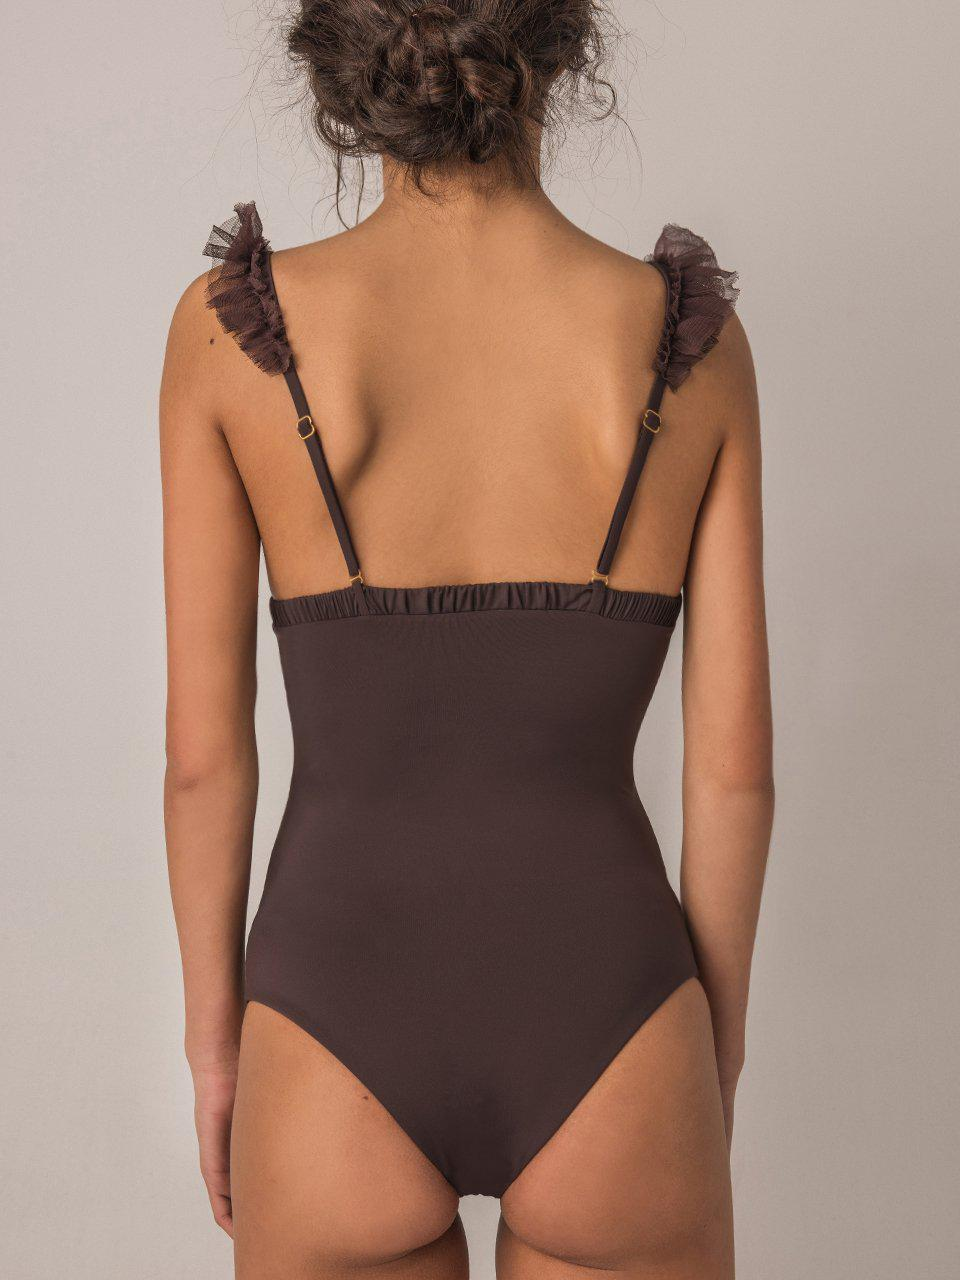 Silky Wings Vintage One-Piece 2